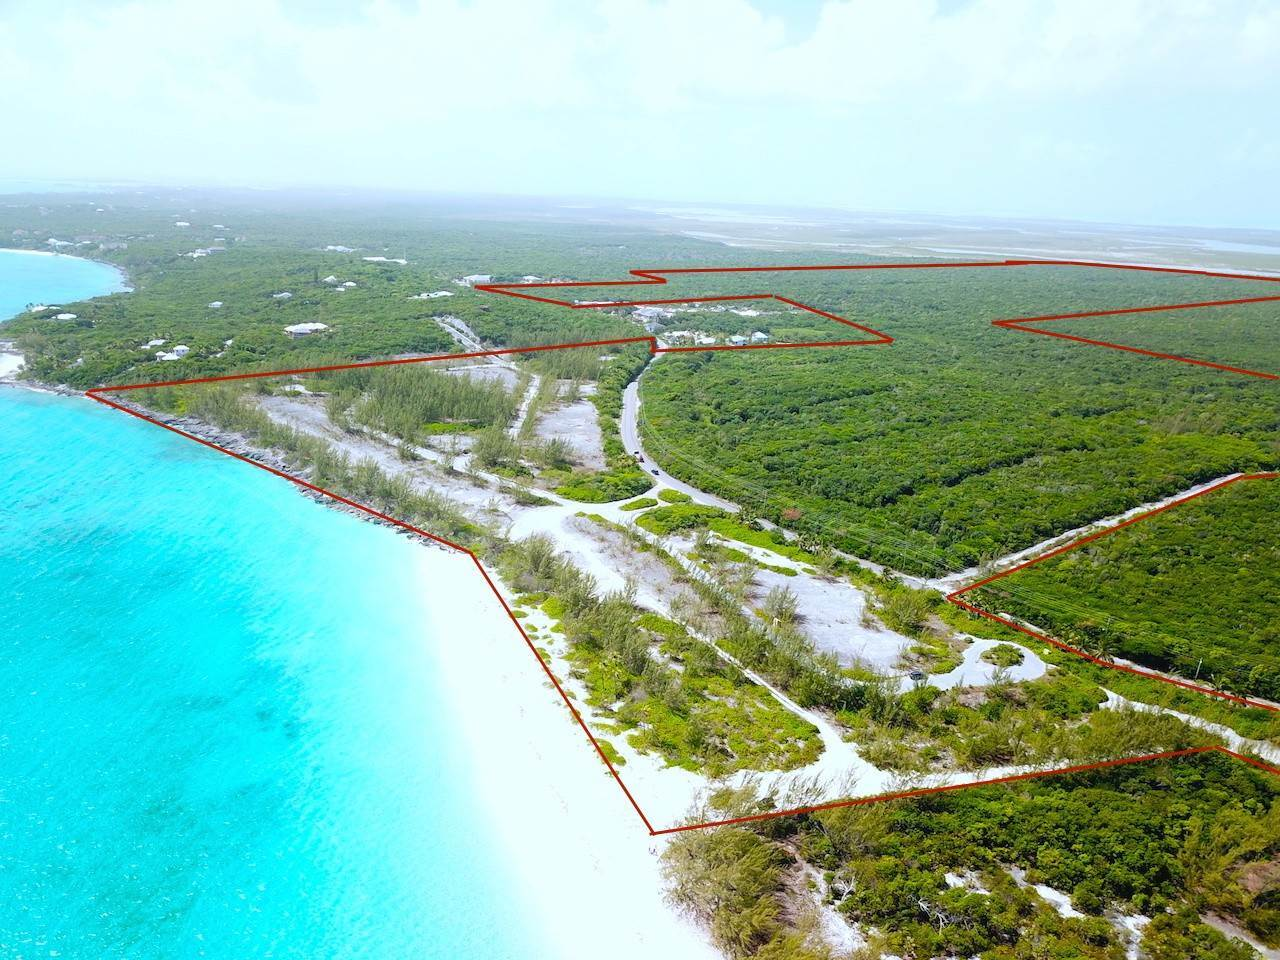 Land for Sale at Fully Approved Resort Development Prime Exuma Location - MLS 42279 Hoopers Bay, Exuma, Bahamas